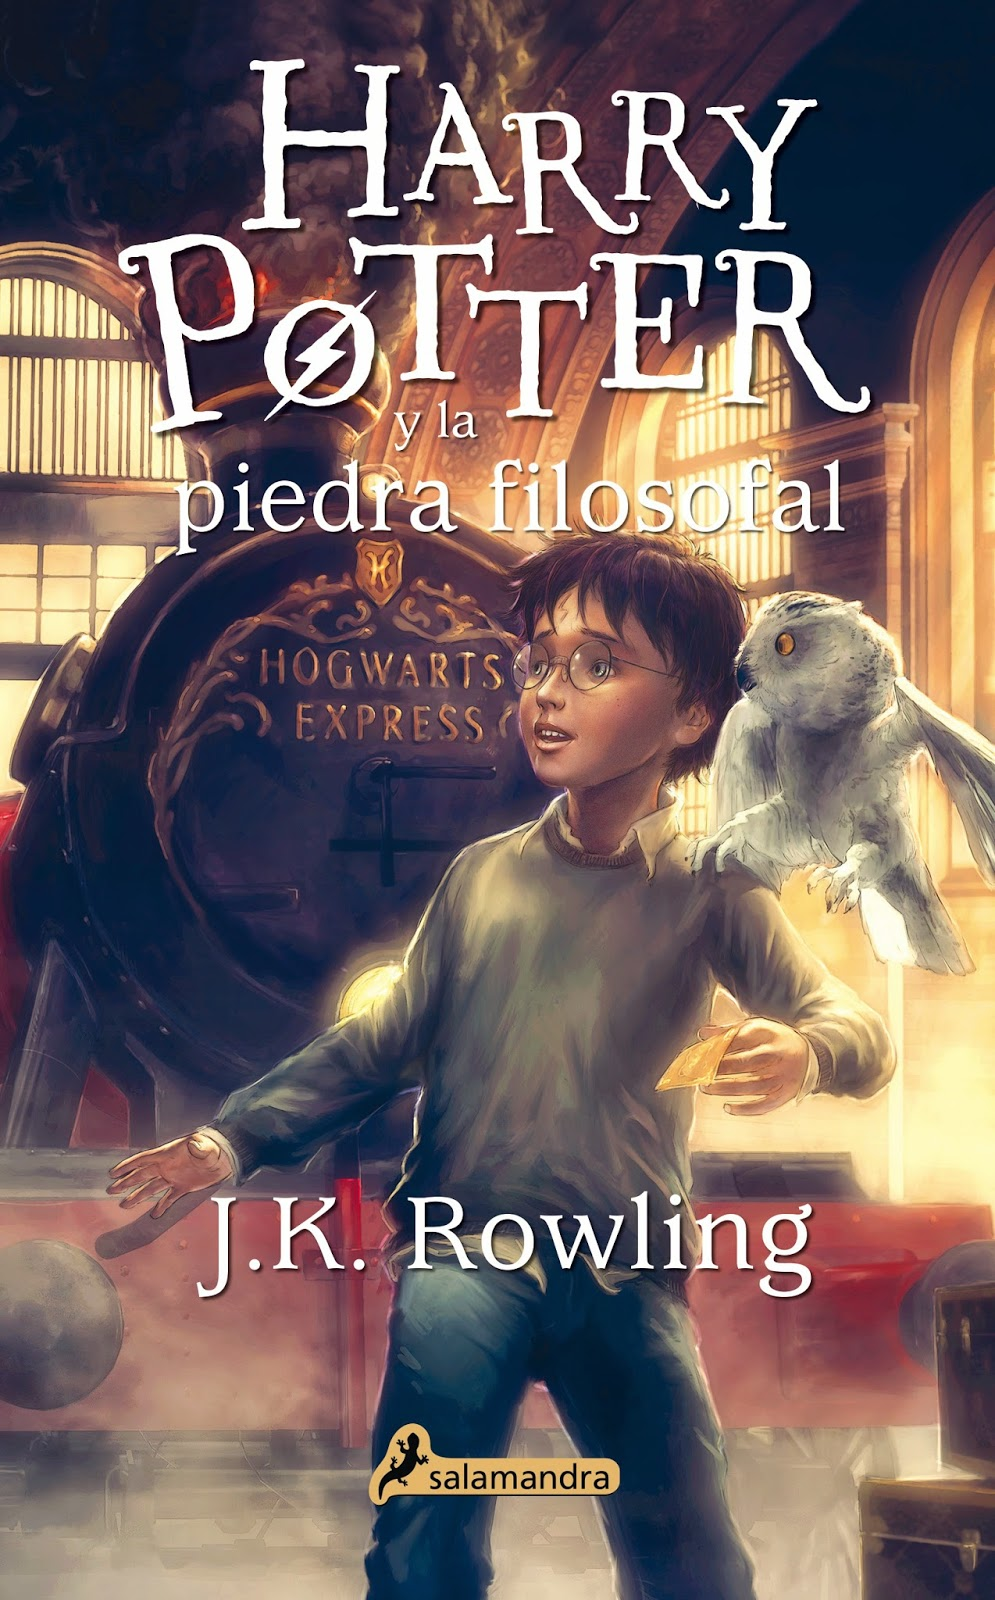 http://yerathelbooks.blogspot.com.es/2015/02/resena-libro-54-harry-potter-1-harry.html